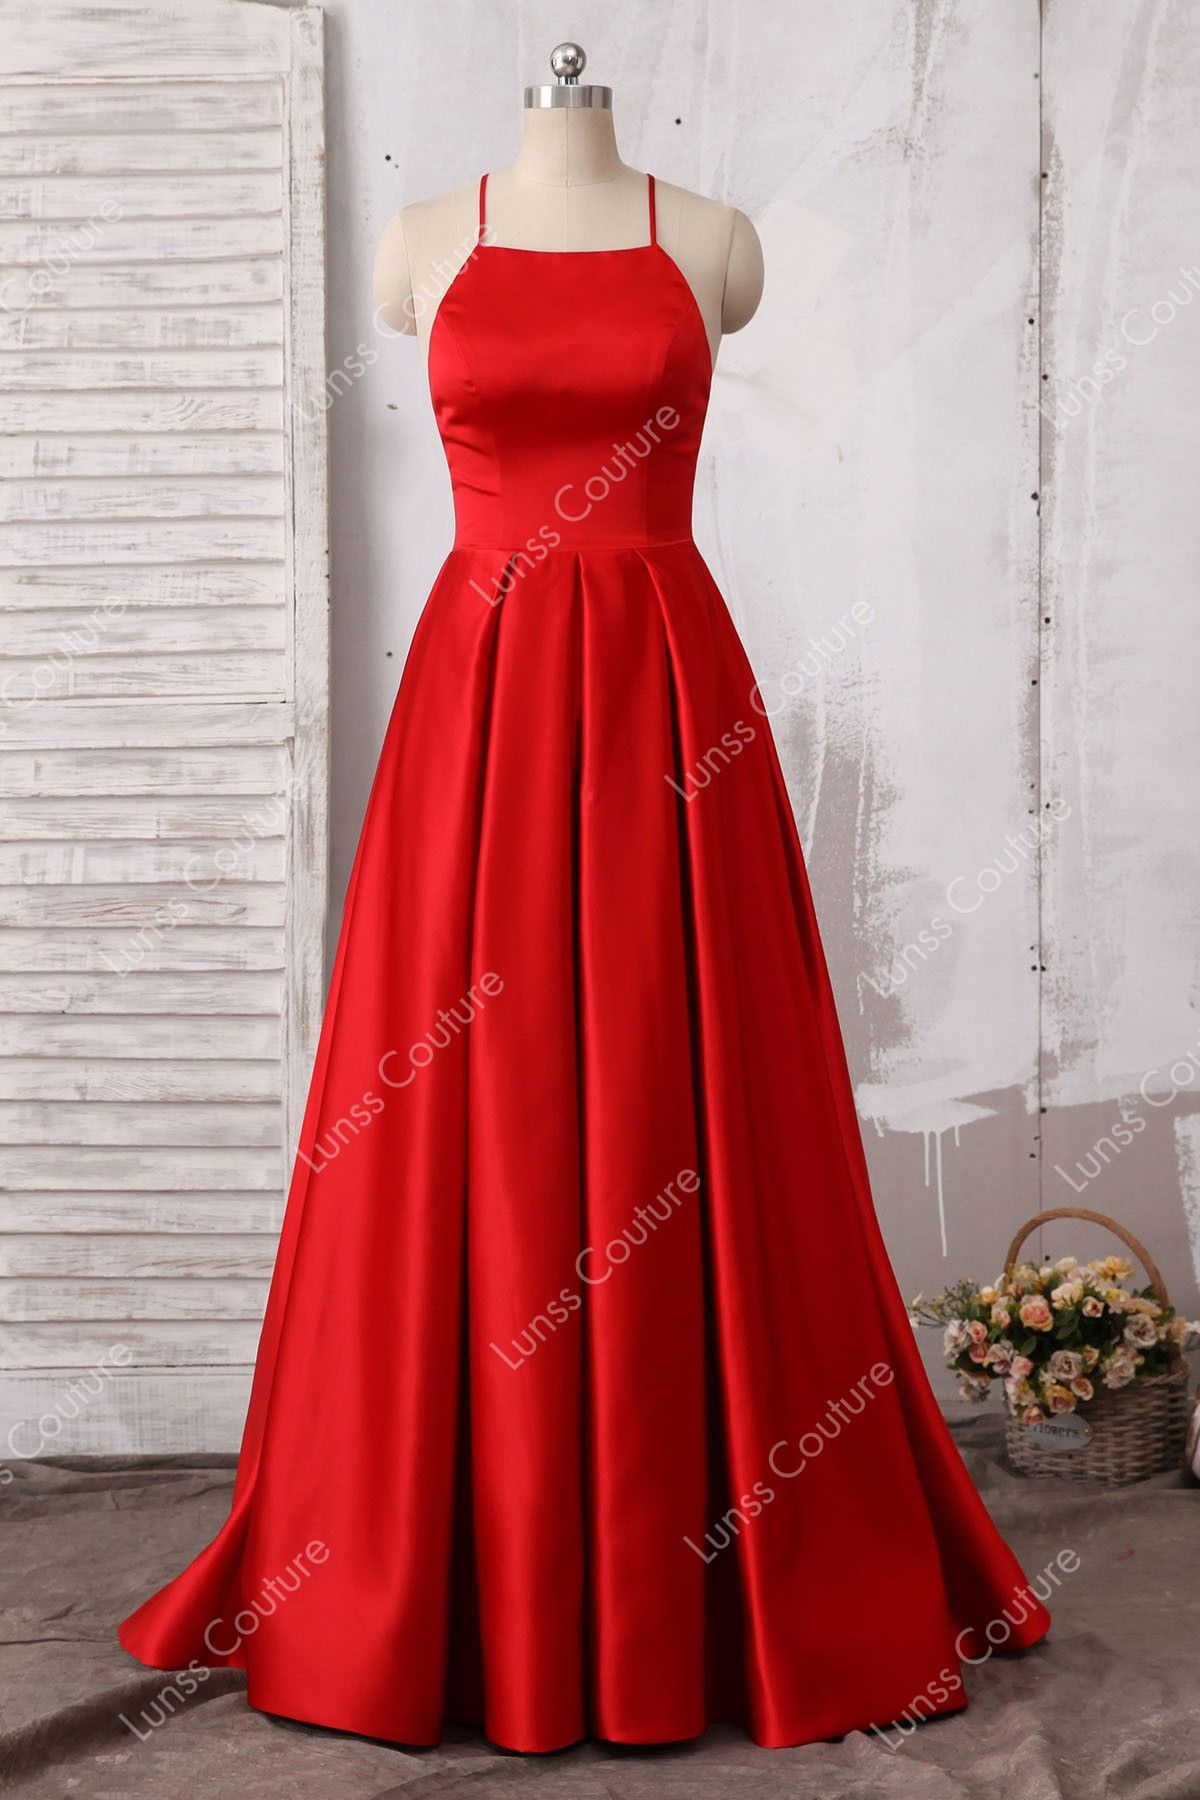 416adc79e1 Elegant Red A-line Satin Sleeveless Spaghetti Strap Floor Length Evening Prom  Dress